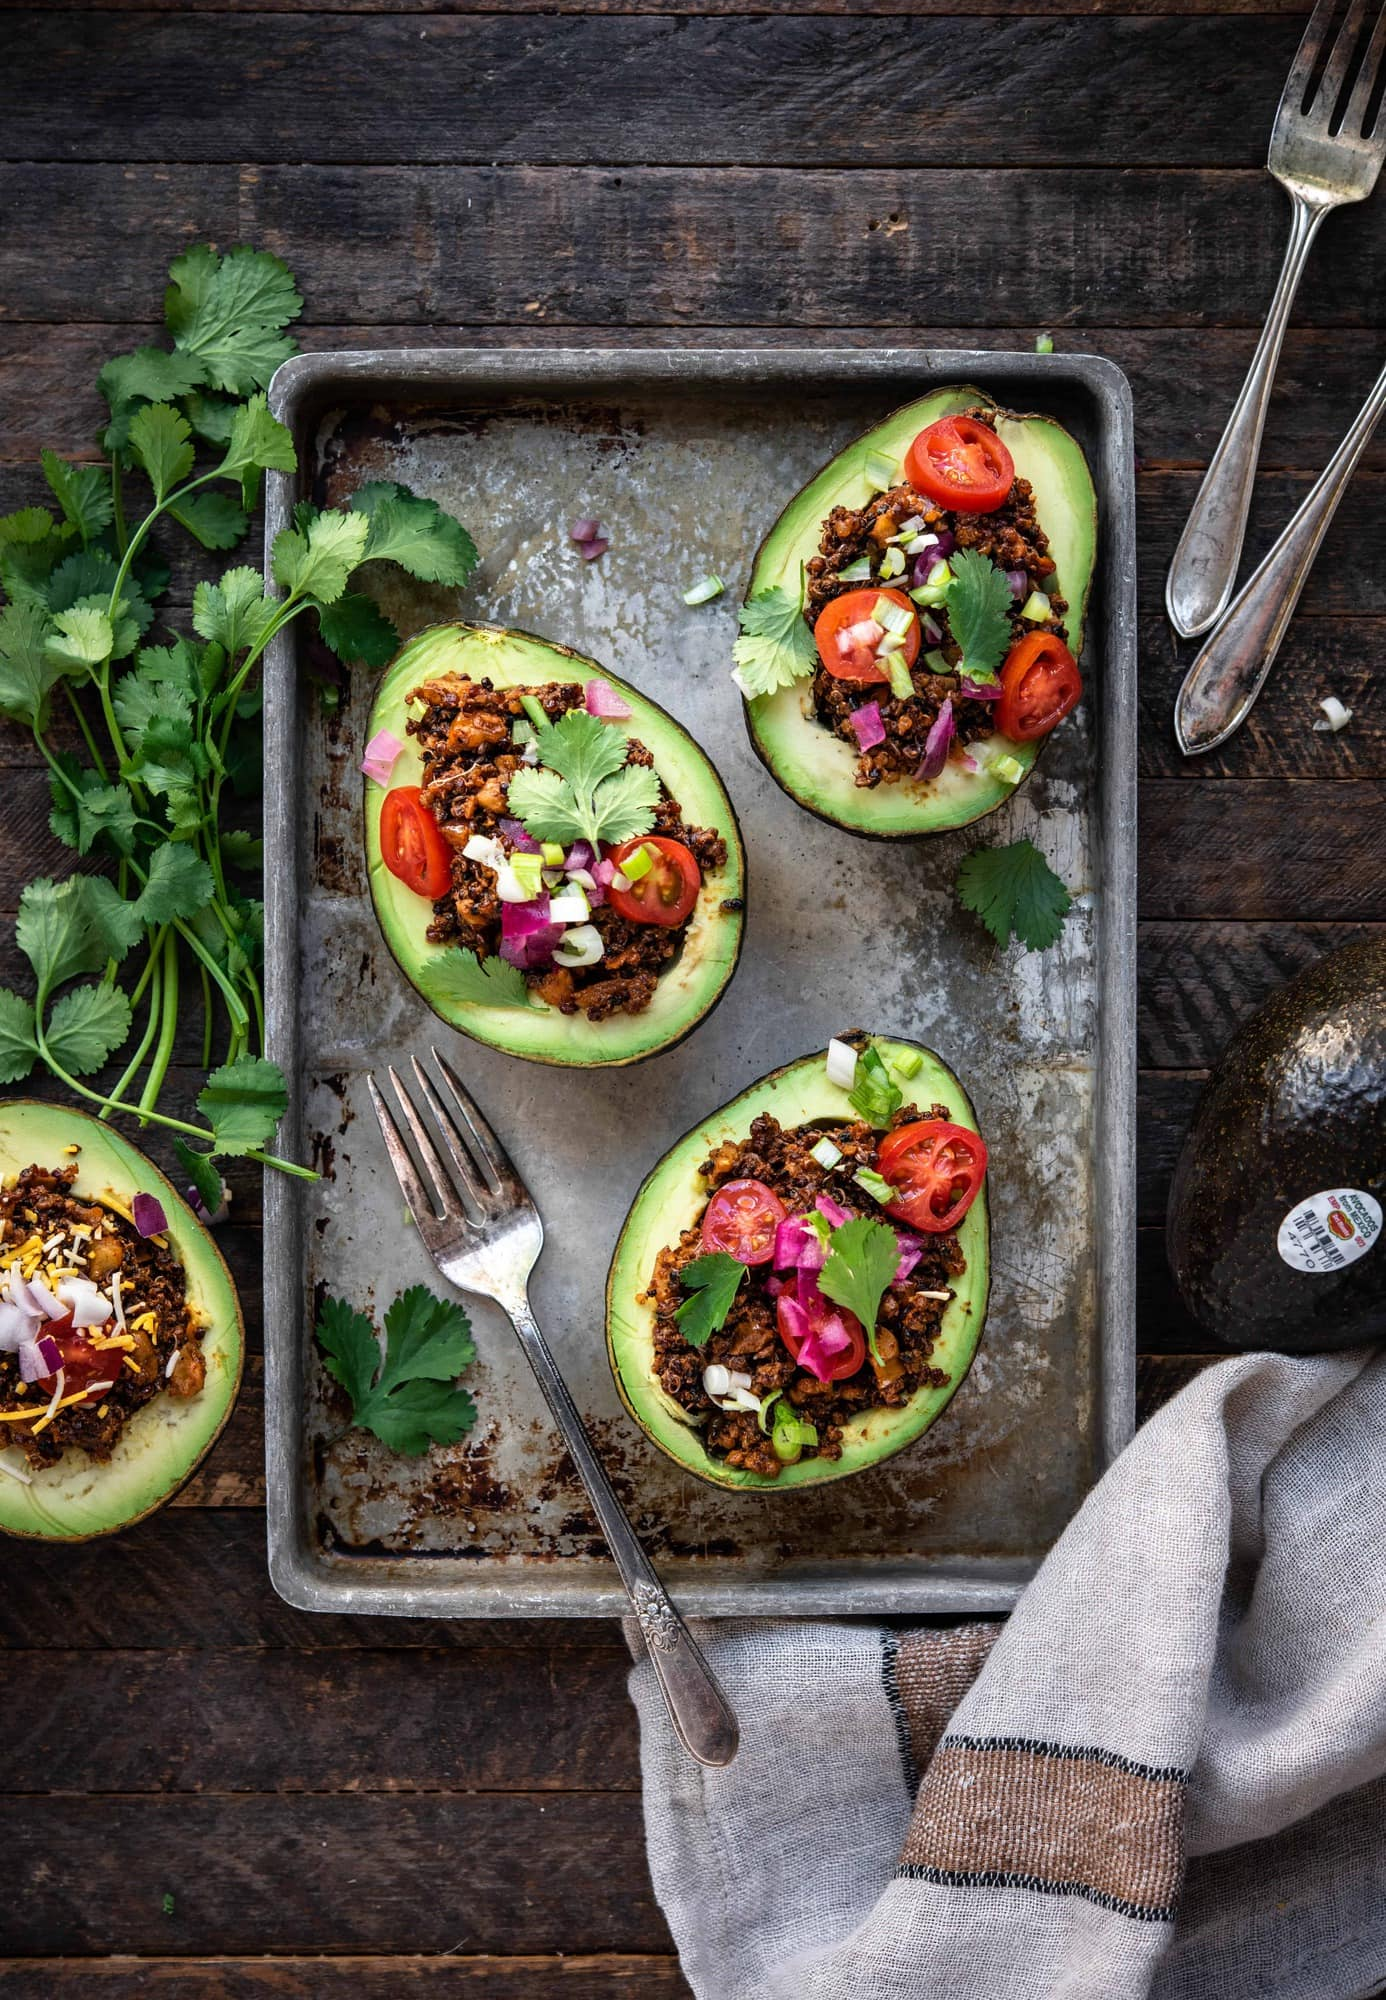 Overhead view of vegan taco stuffed avocados on a sheet pan on wood background